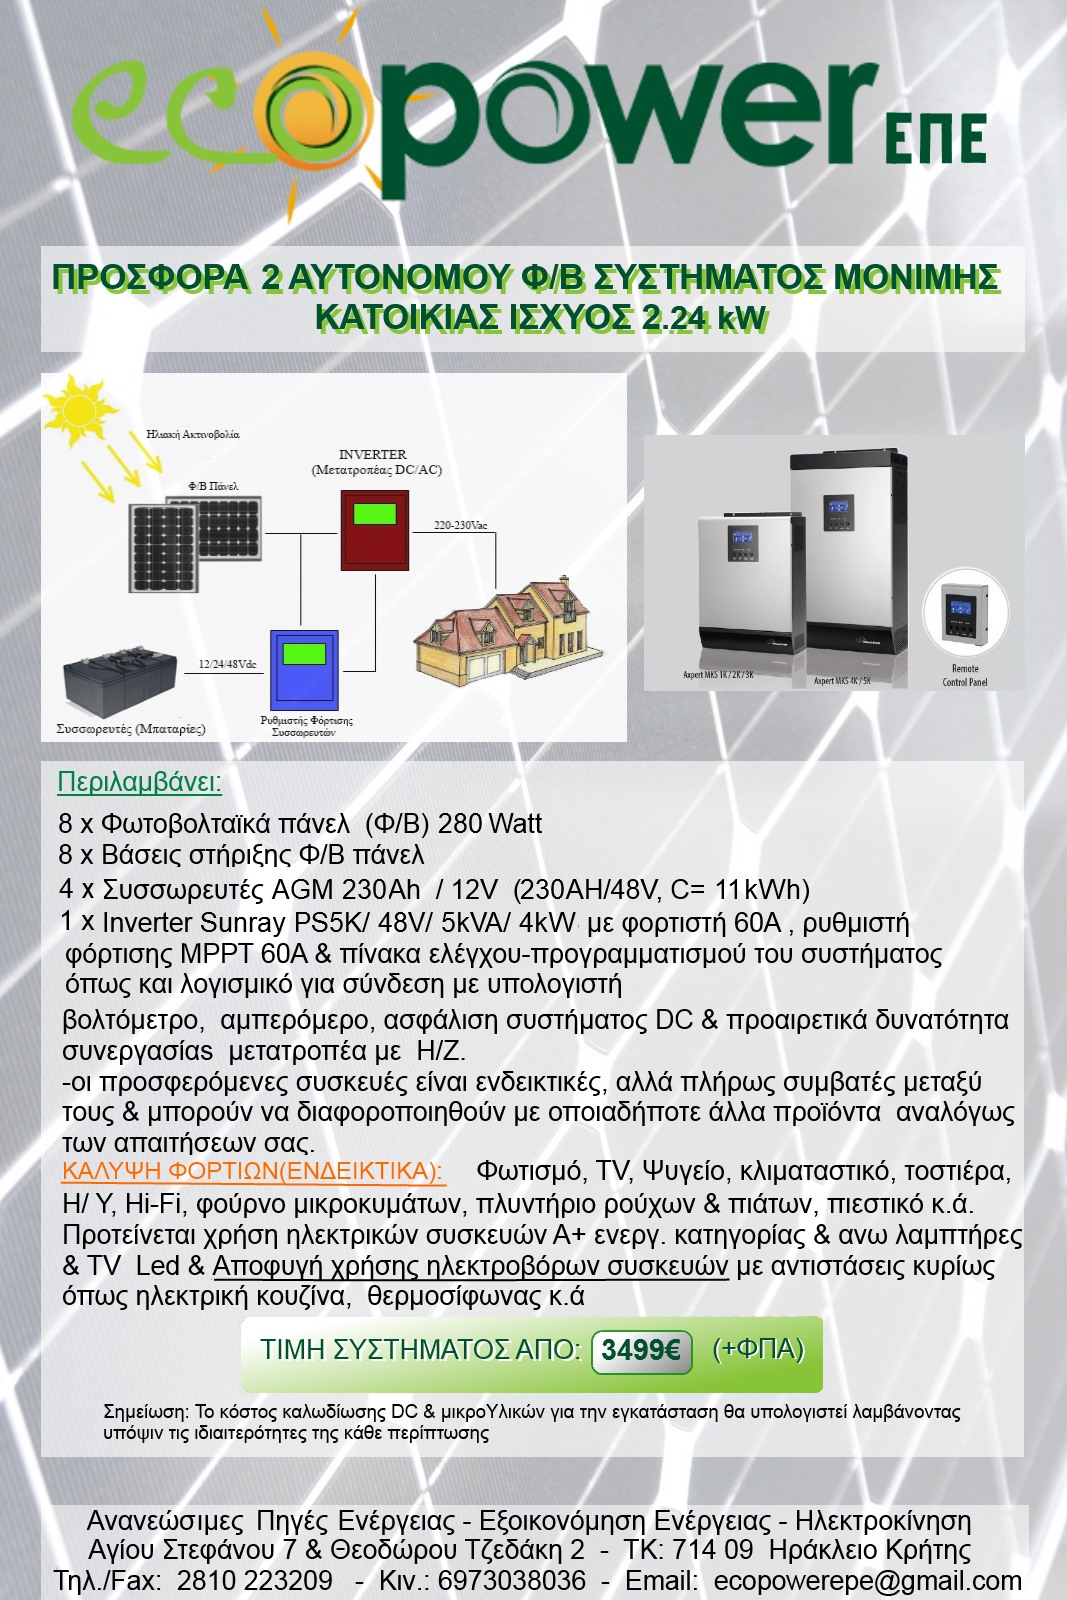 offers/pv/prosfora_2_monimis_with_new_inverter_4-2019.jpg